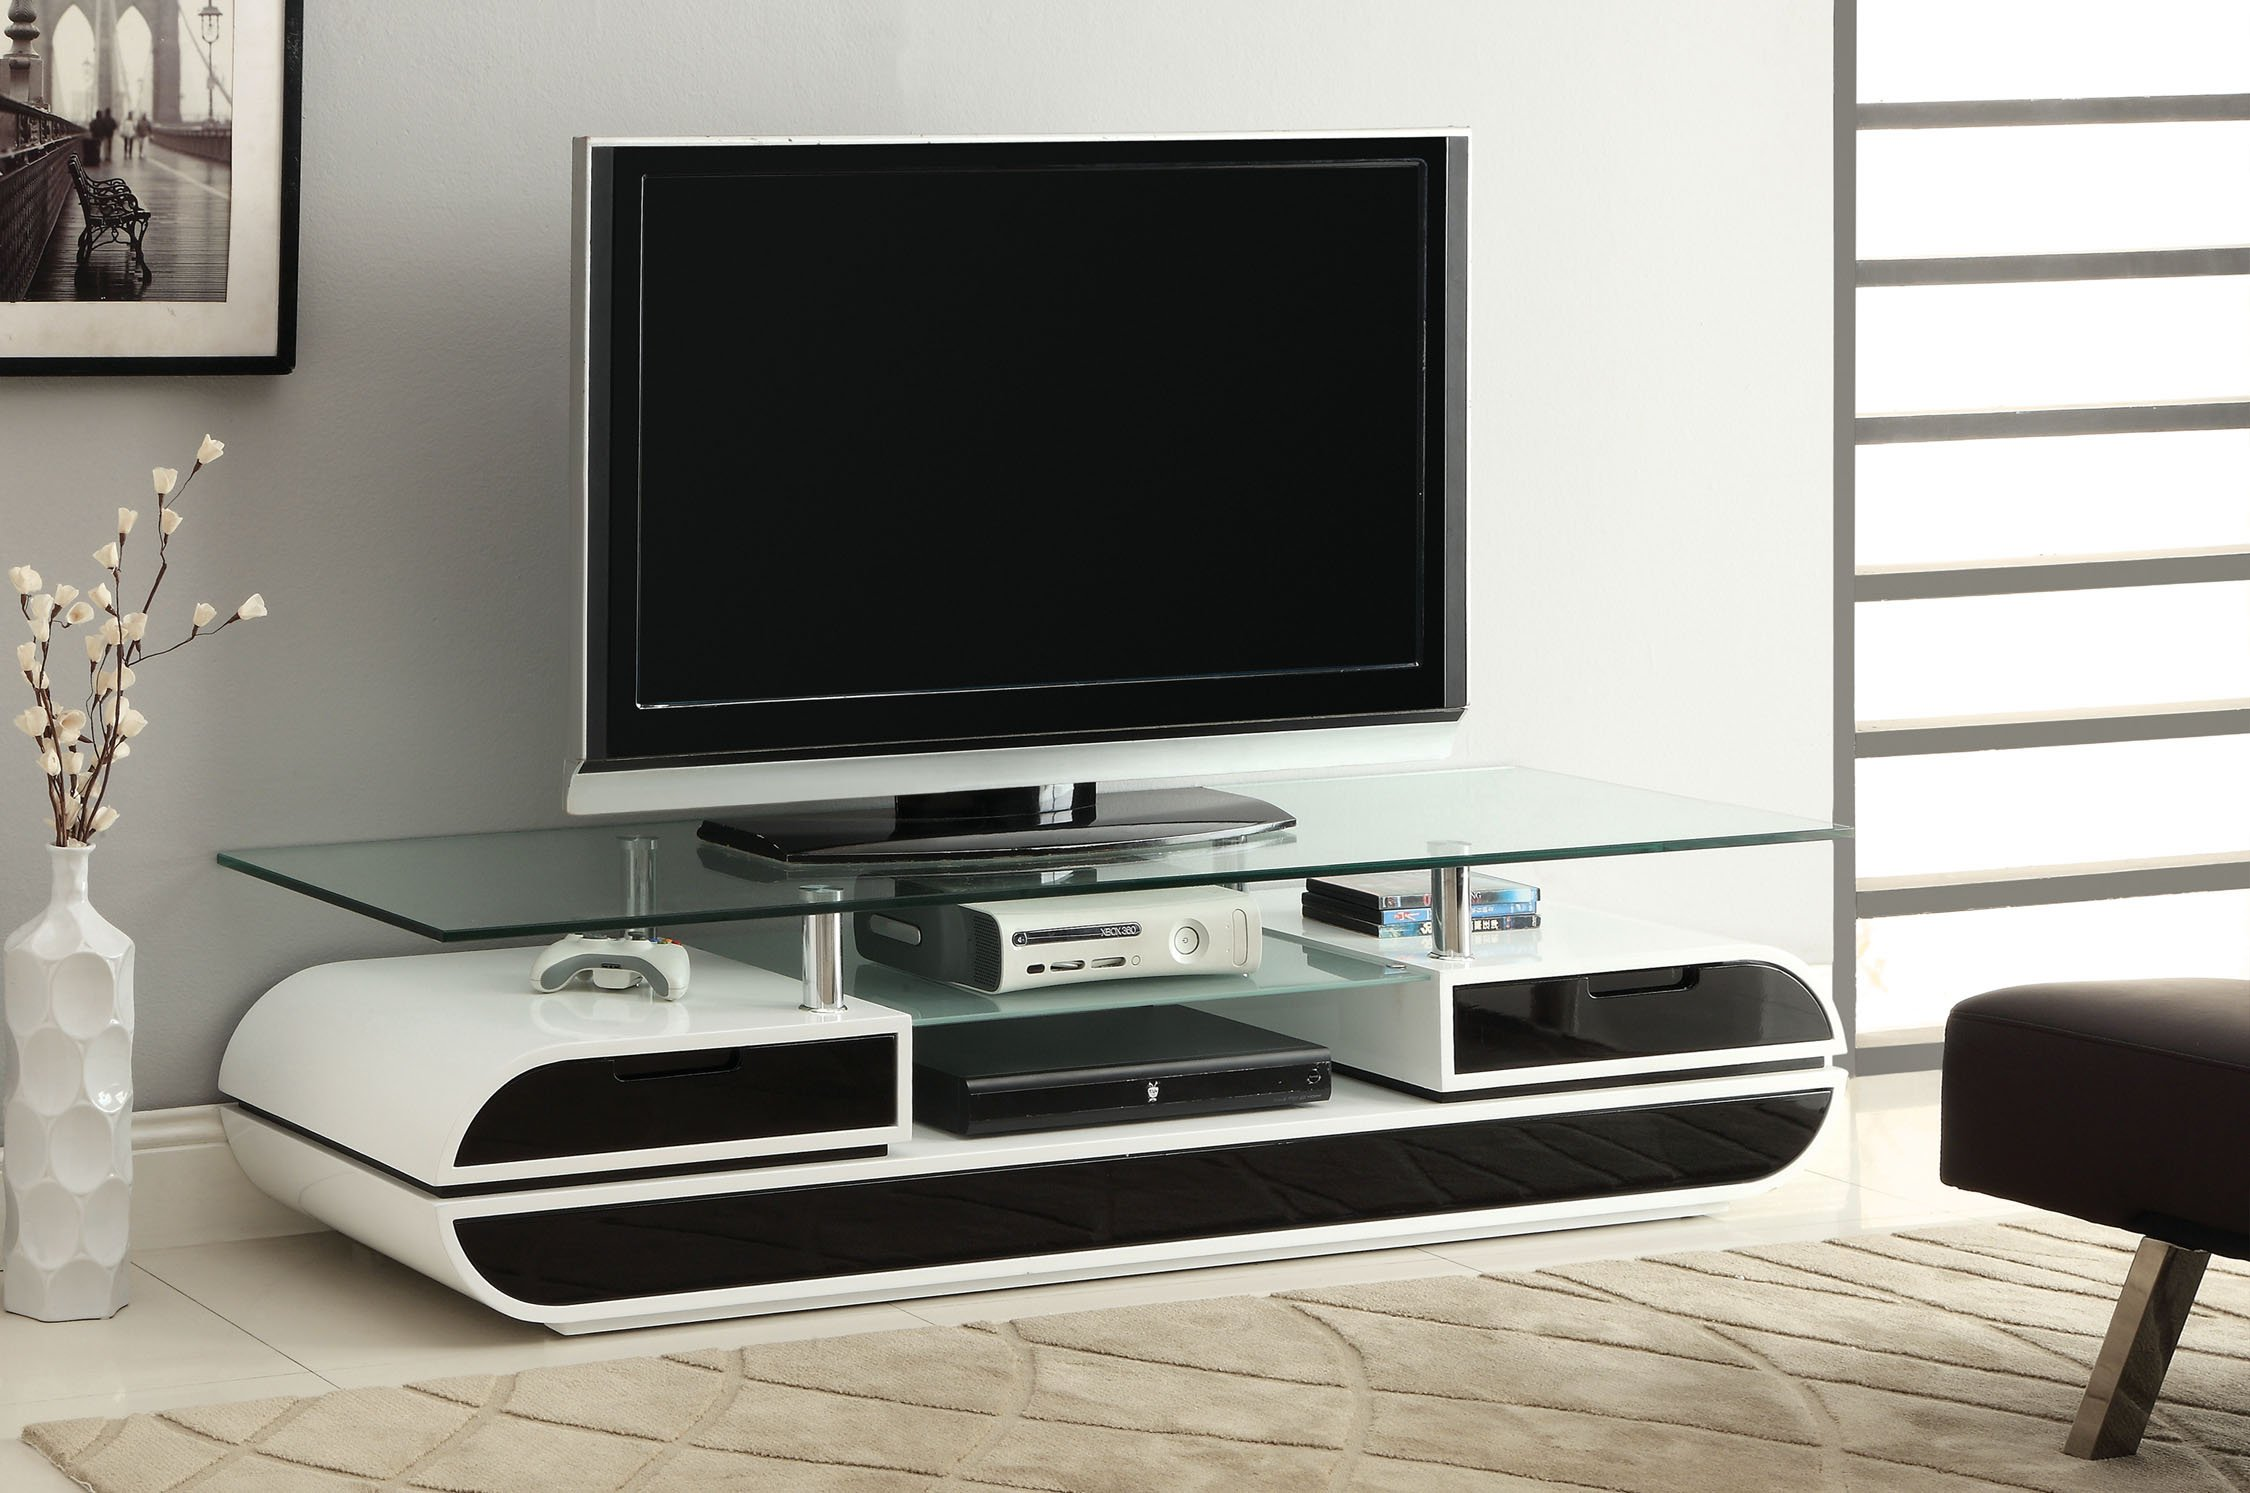 Furniture of America Glenn Contemporary TV Console/Stand, 63-Inch, Glossy Black and White by Furniture of America